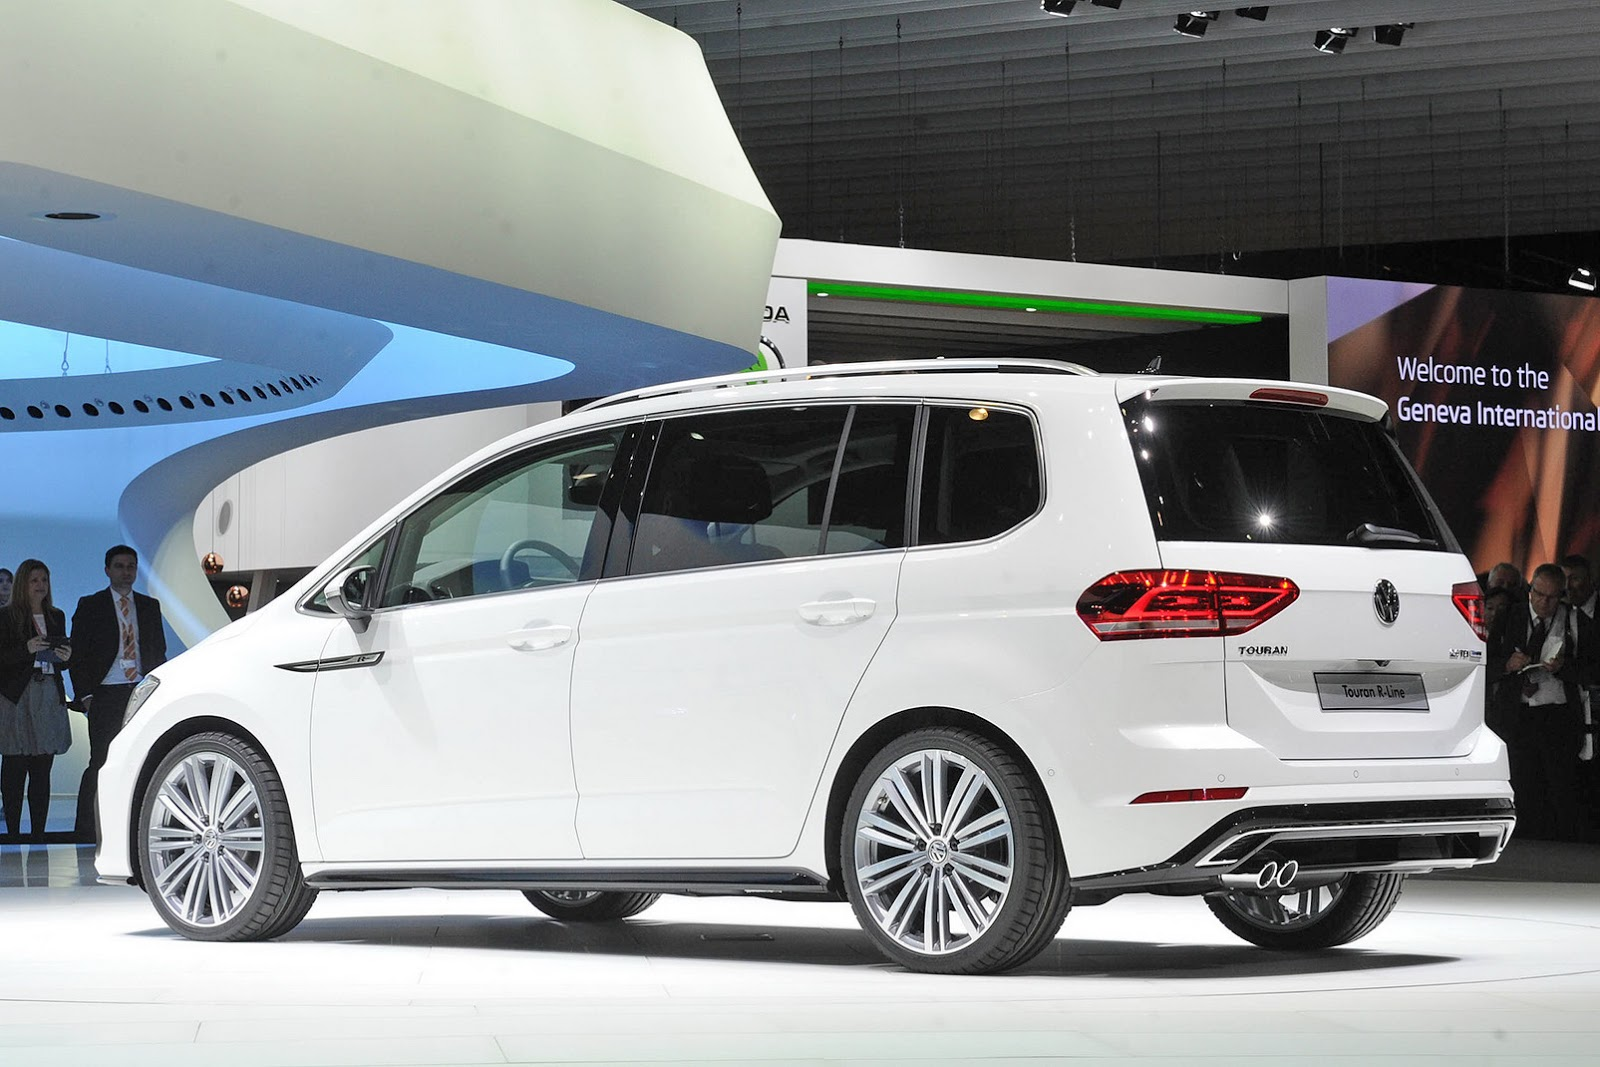 New vw touran looking good in r line outfit carscoops for Interieur tuning auto